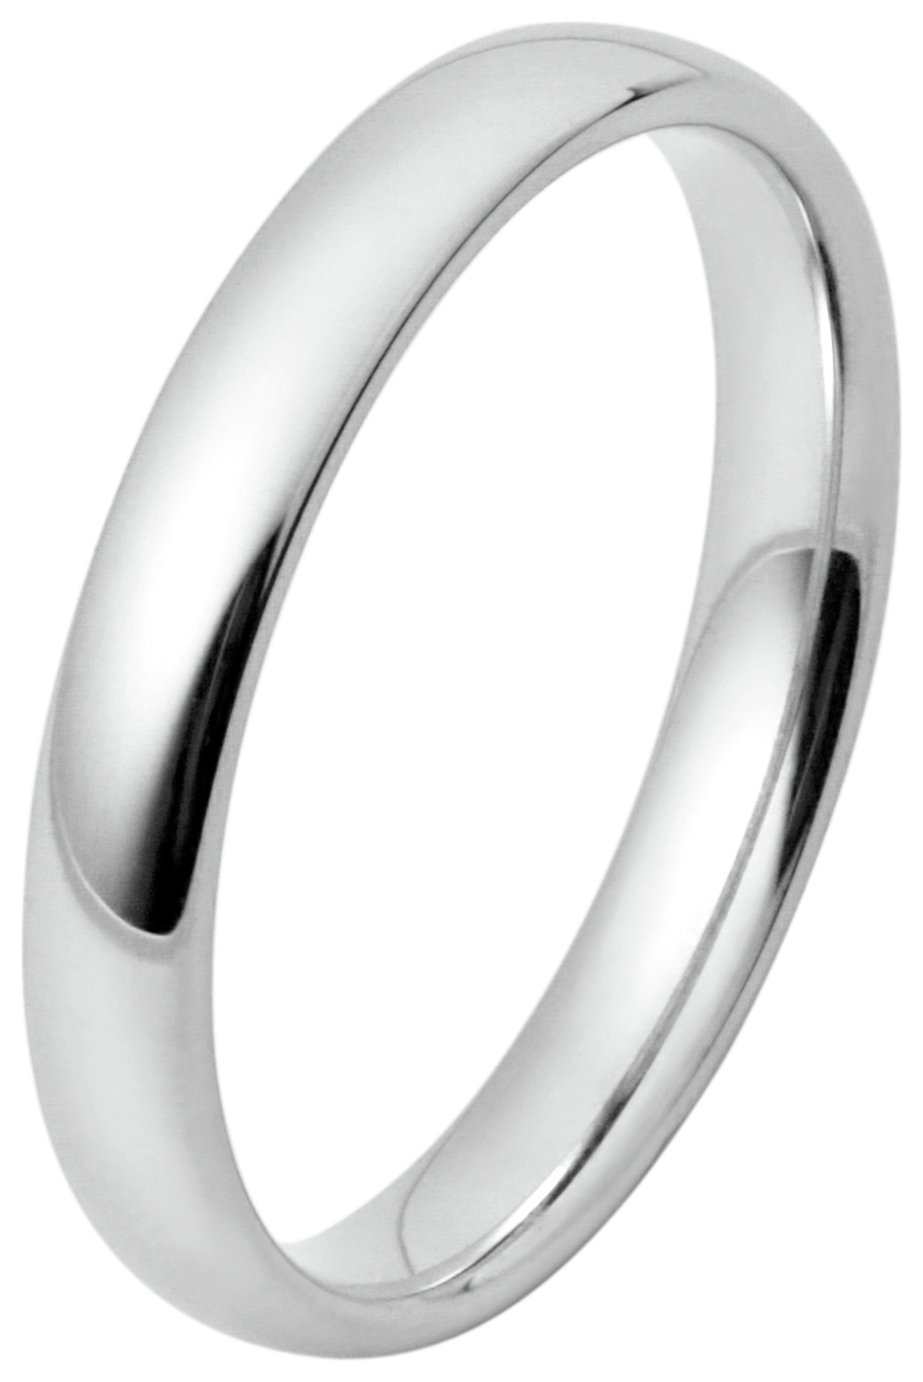 Inara Rhodium Plated Ceramic Stacking Ring